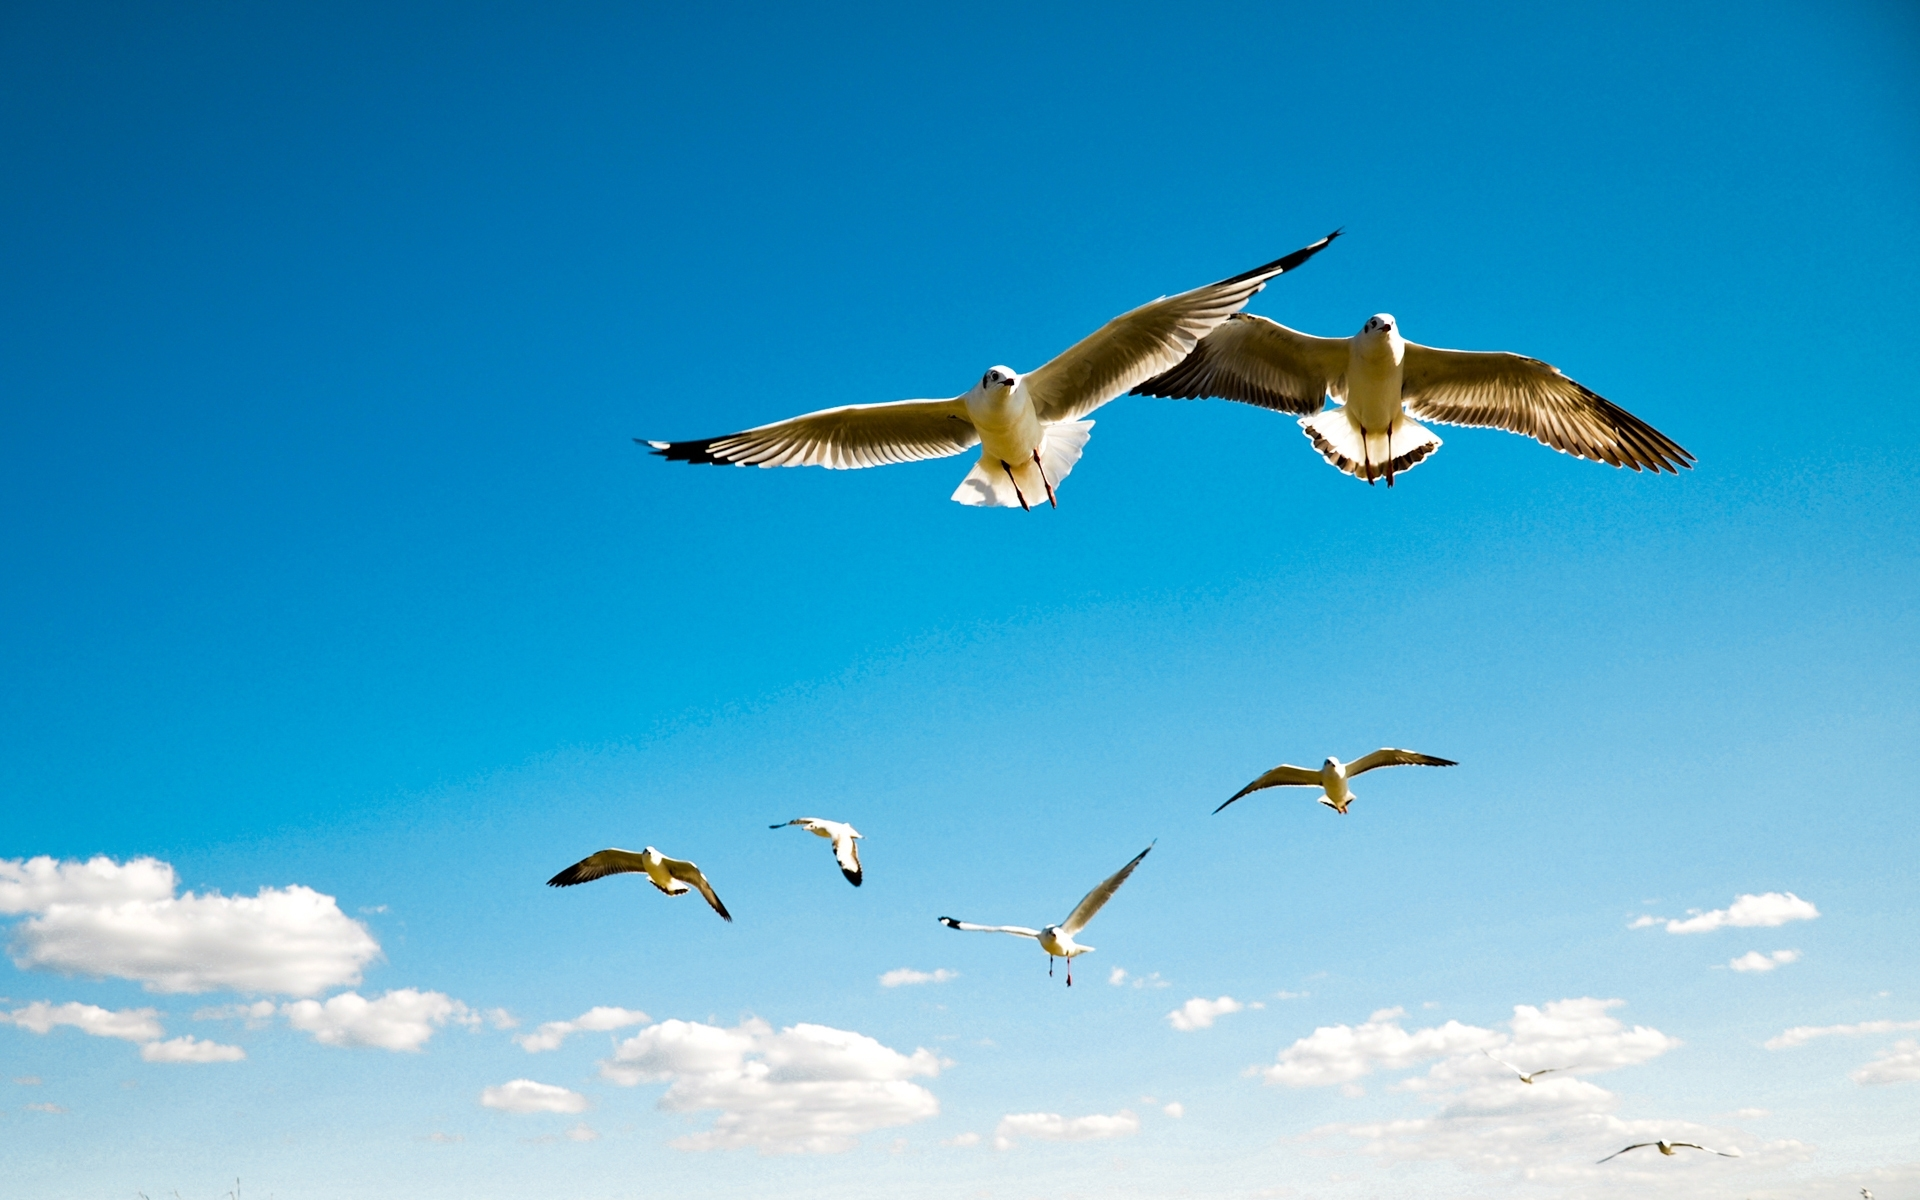 30398 download wallpaper Animals, Birds, Seagulls screensavers and pictures for free